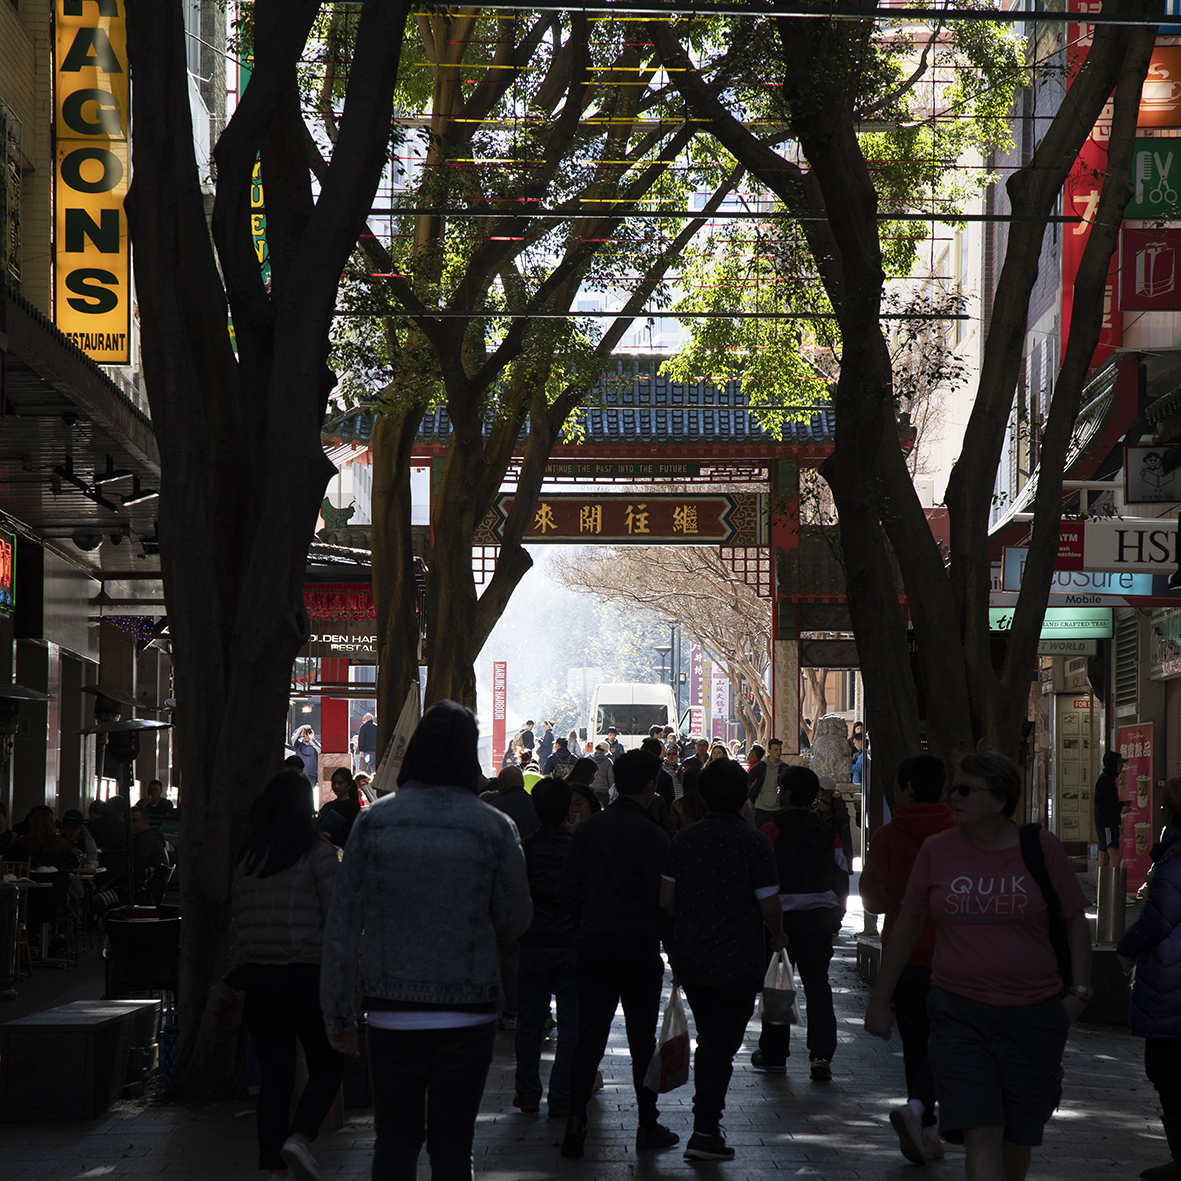 China town Sydney